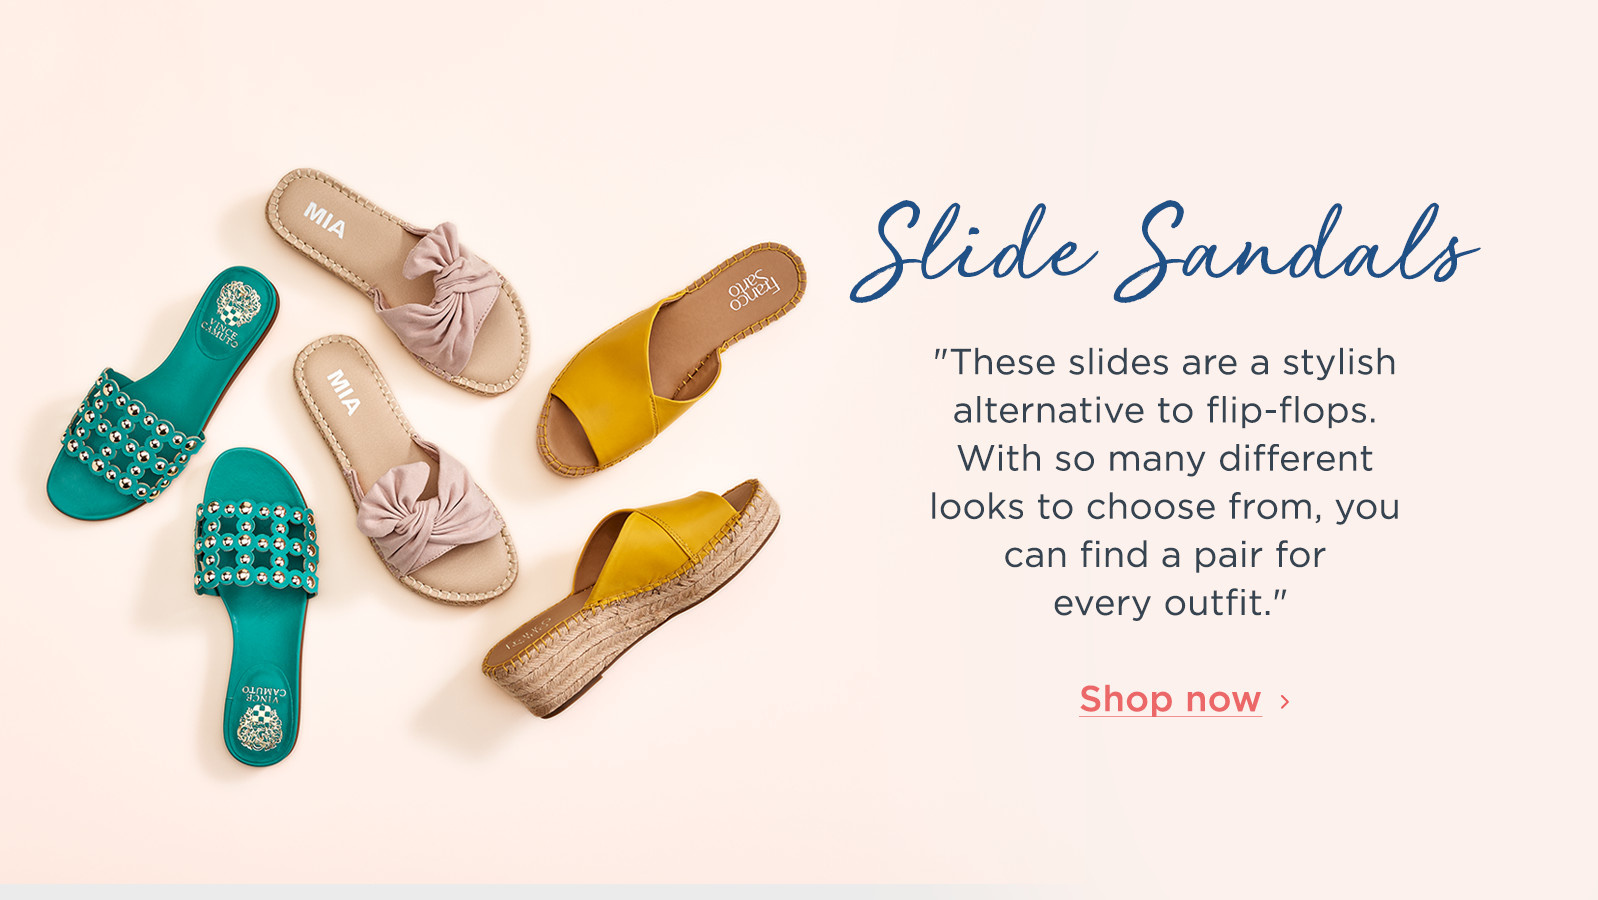 """These slides are a stylish alternative to flip-flops. With so many different looks to choose from, you can find a pair for every outfit.""  Shop now"